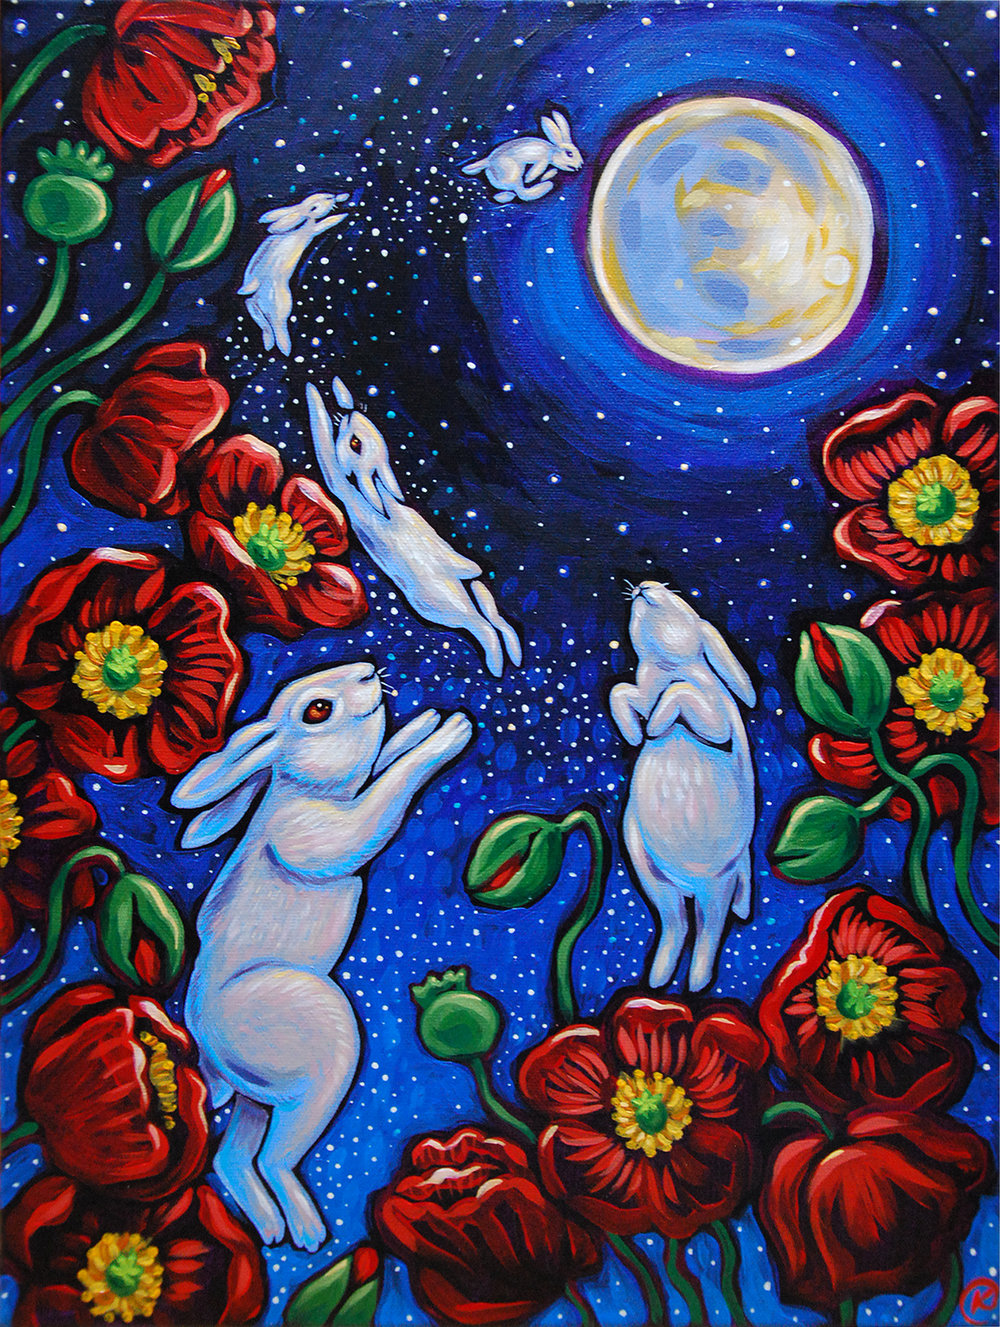 White Rabbits Return to the Moon 2019